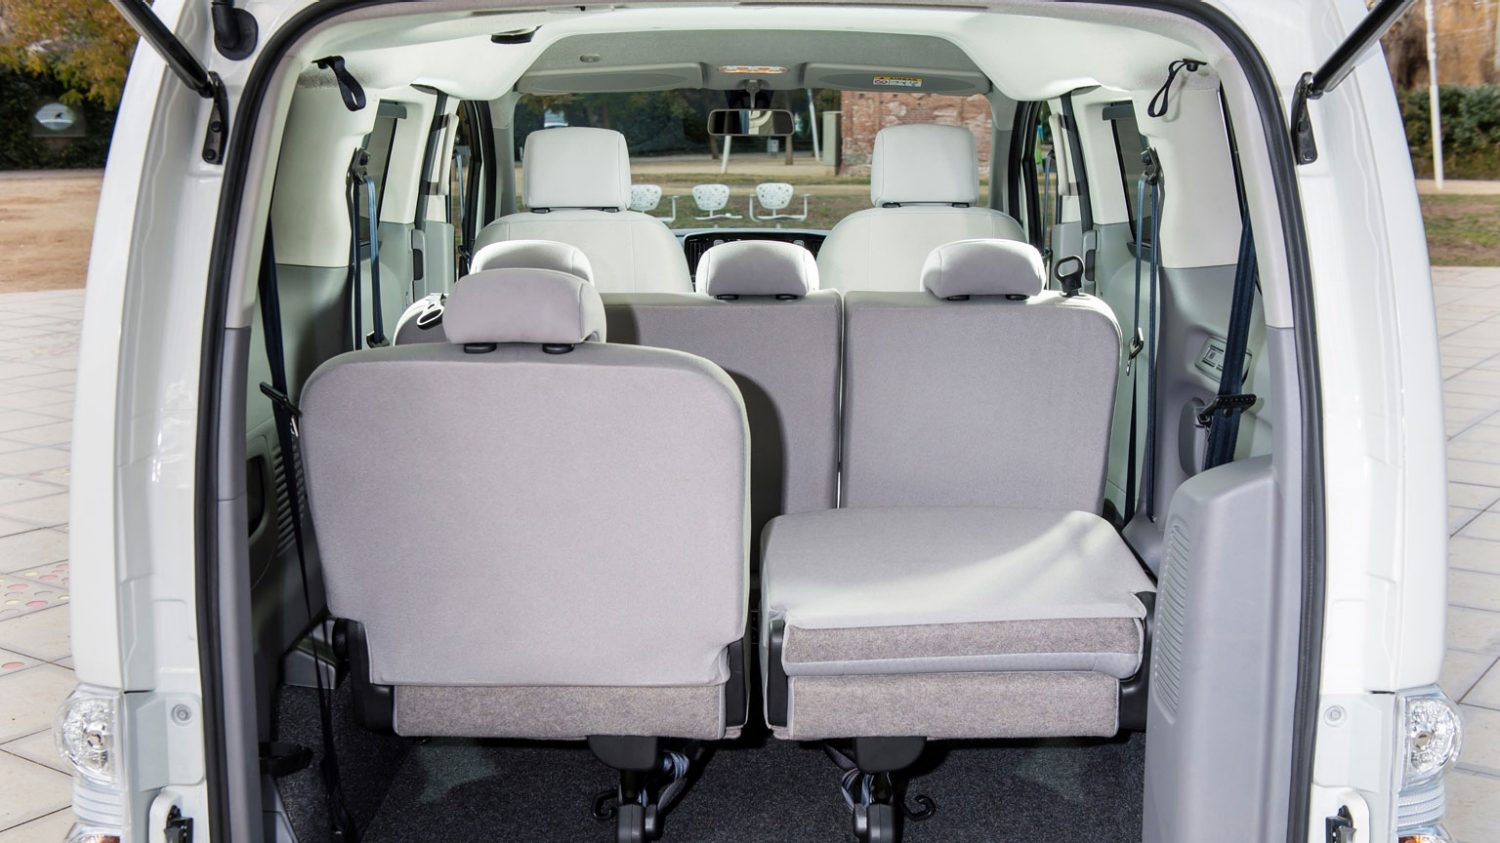 quipements nissan e nv200 evalia nissan. Black Bedroom Furniture Sets. Home Design Ideas